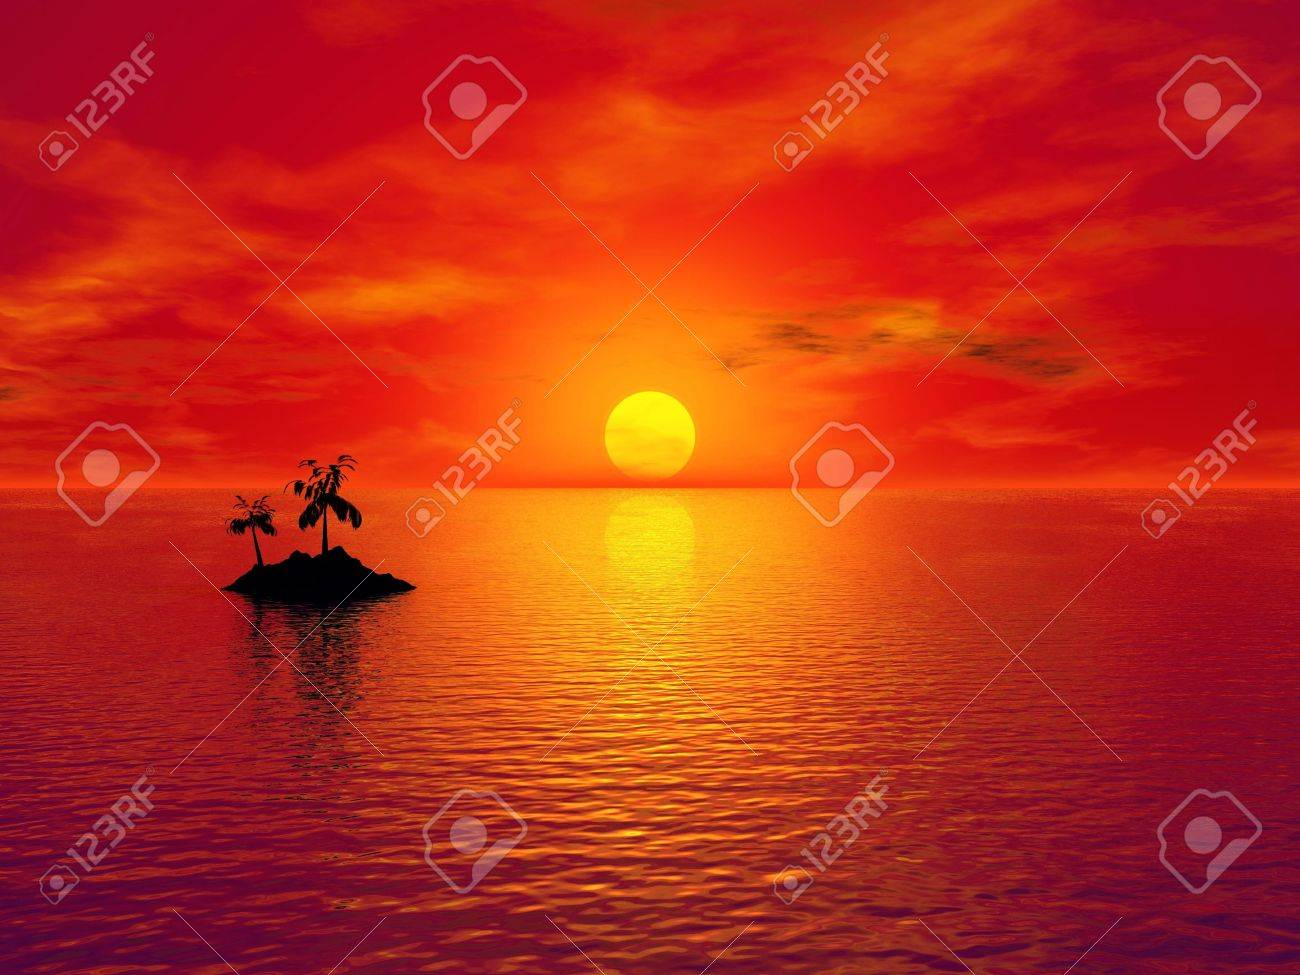 3D rendering of a small island with coconut trees at sunset Stock Photo - 6854838